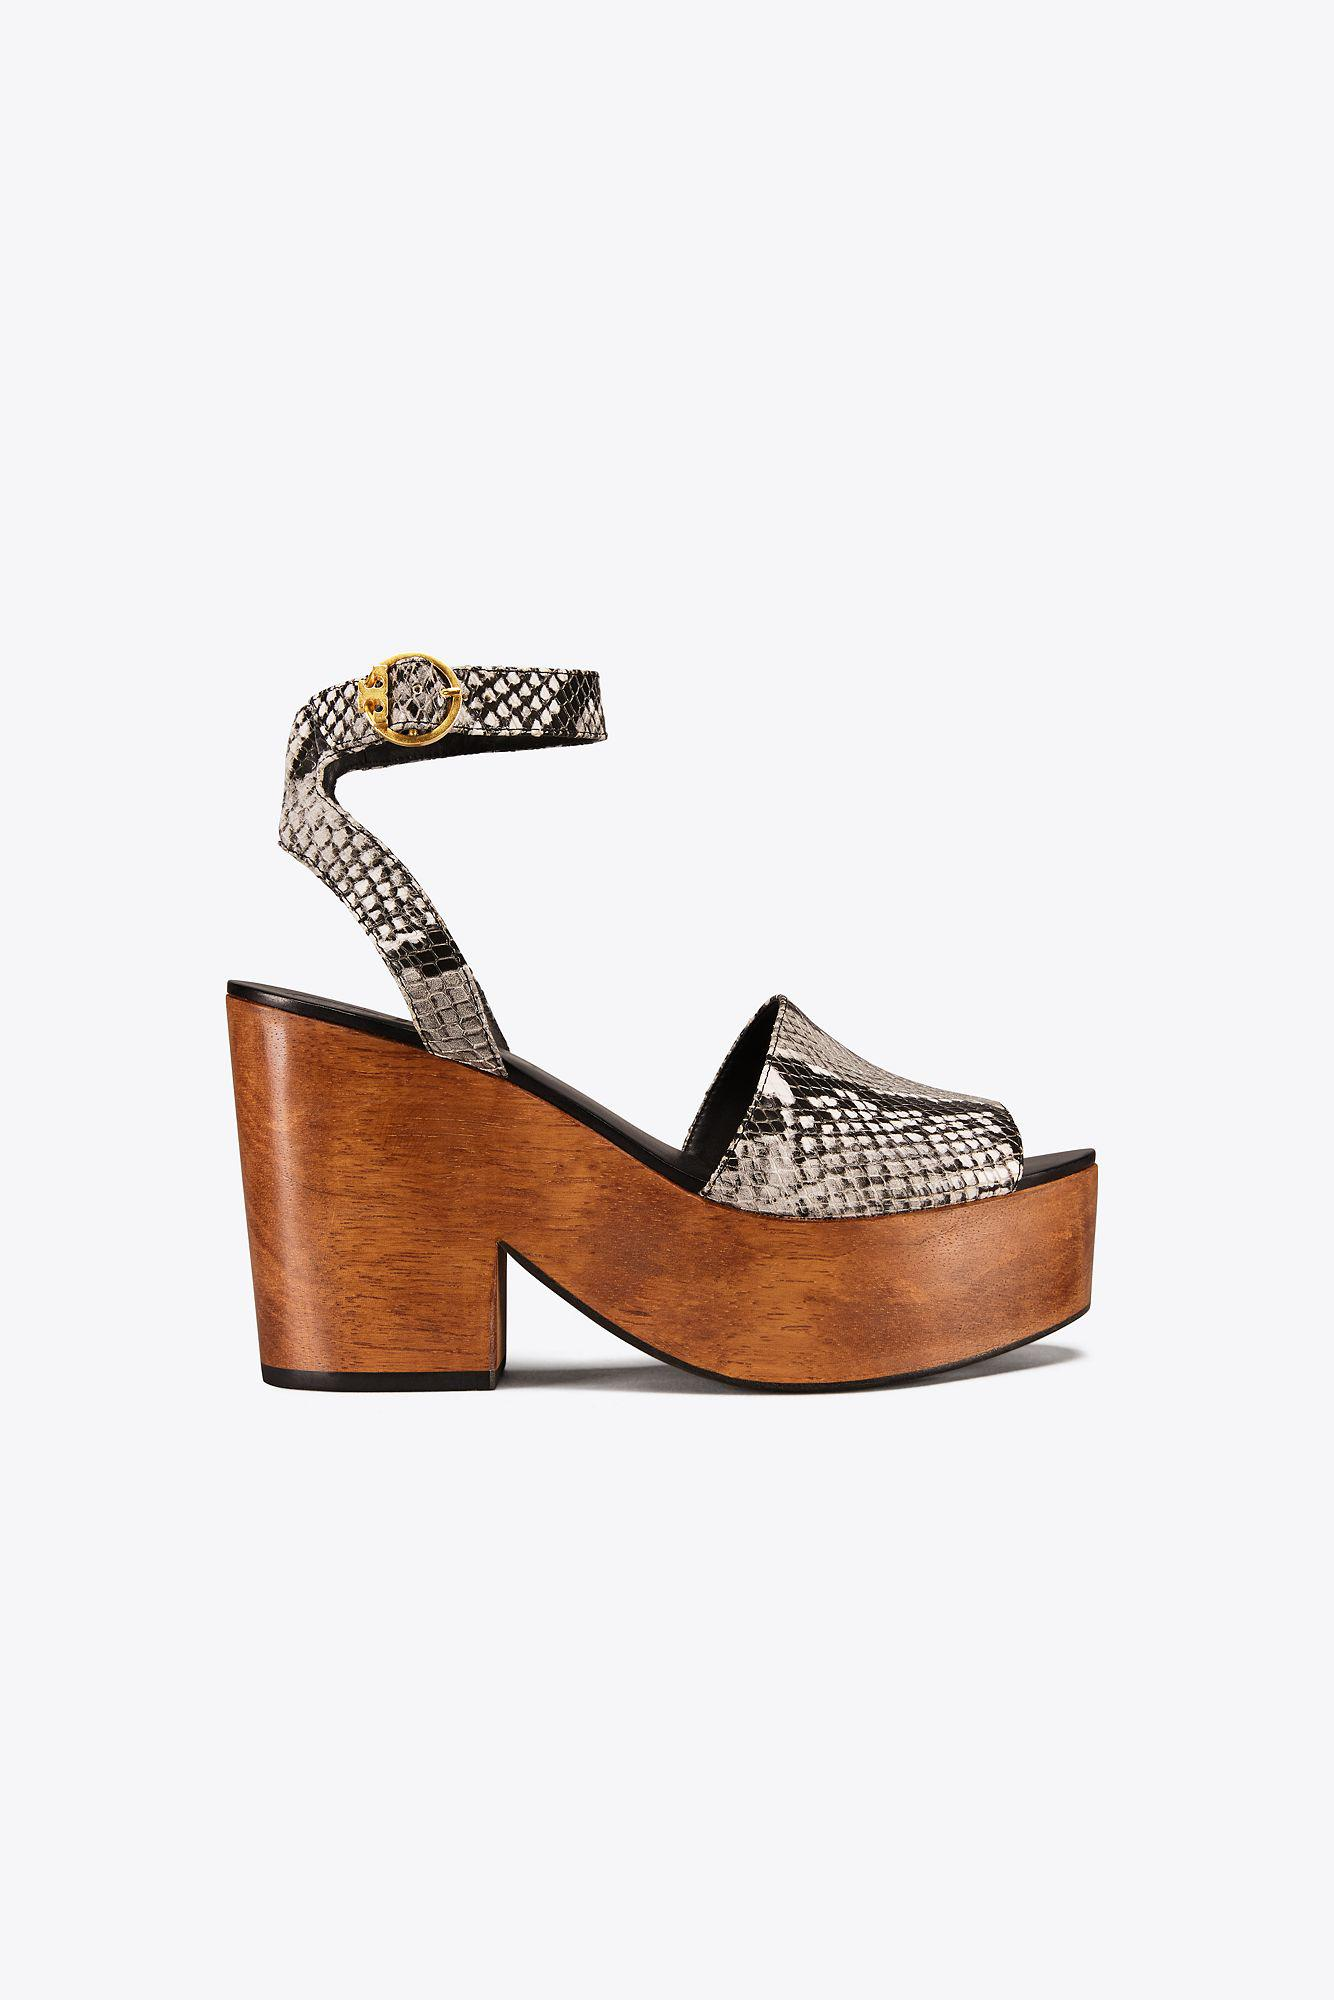 discount 2015 new cheap discount authentic Tory Burch Embossed Slingback Sandals clearance authentic 2015 sale online discount eastbay olQnF